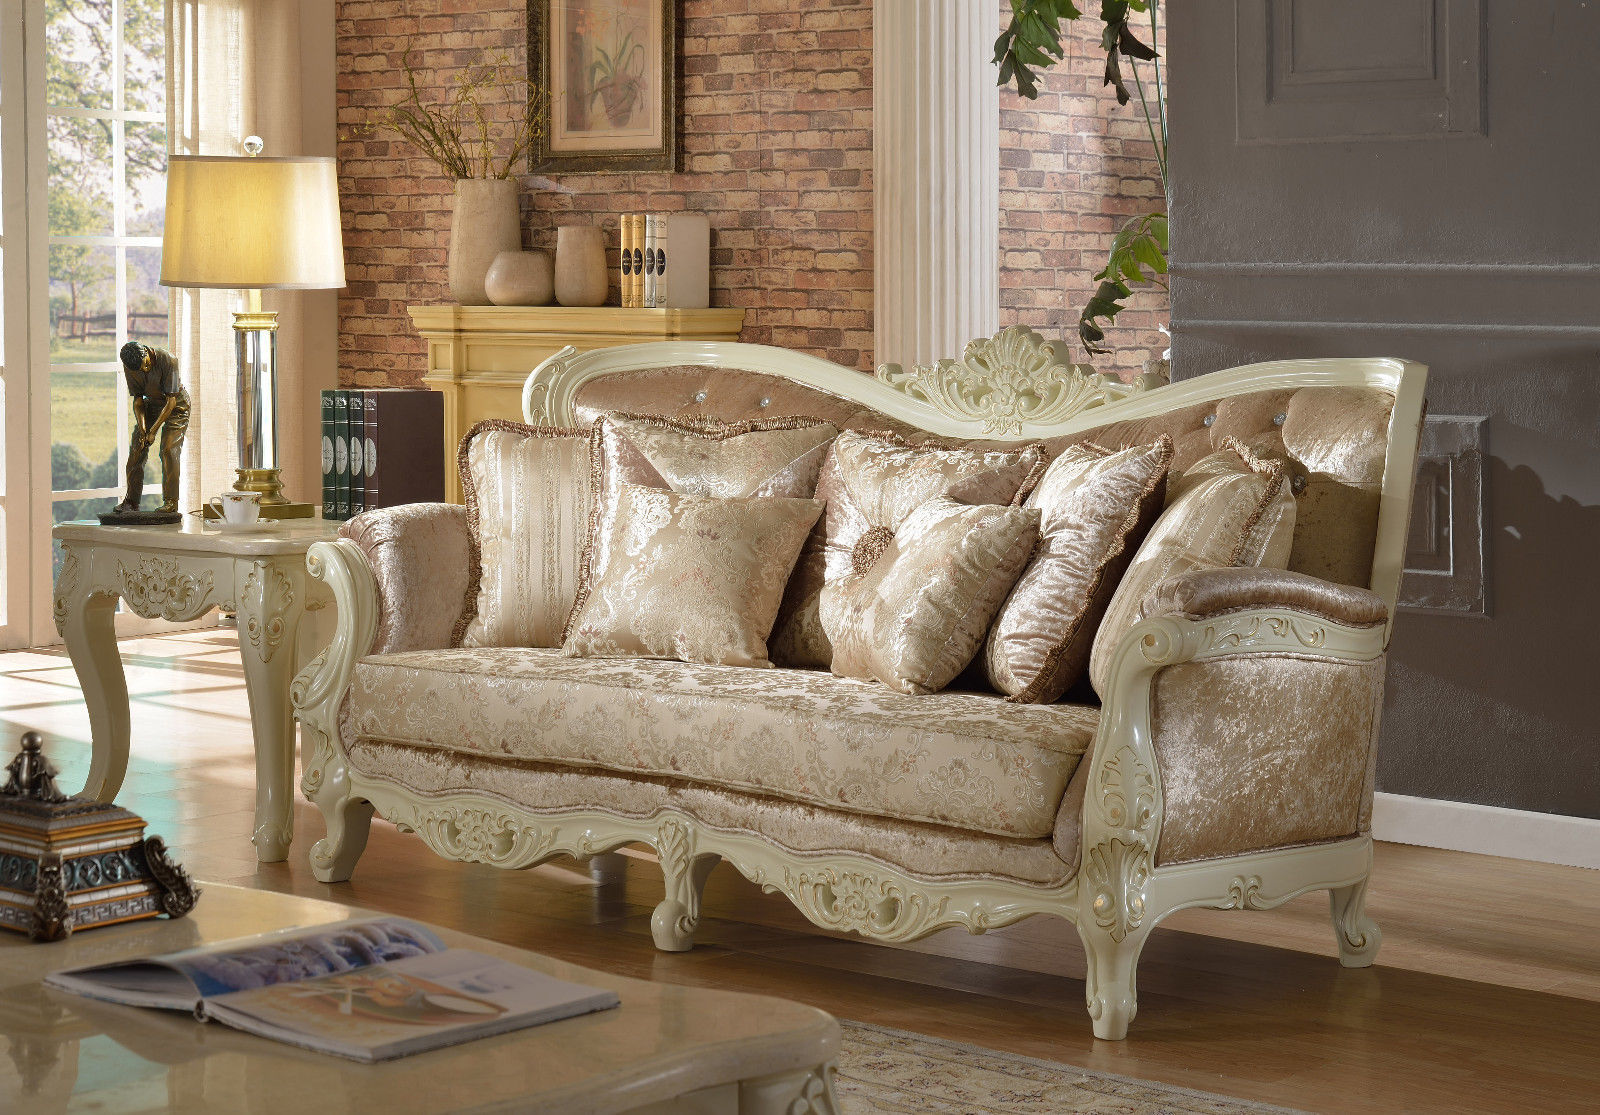 Meridian 687 Living Room Sofa Tufted Pearl White Chic Traditional Style